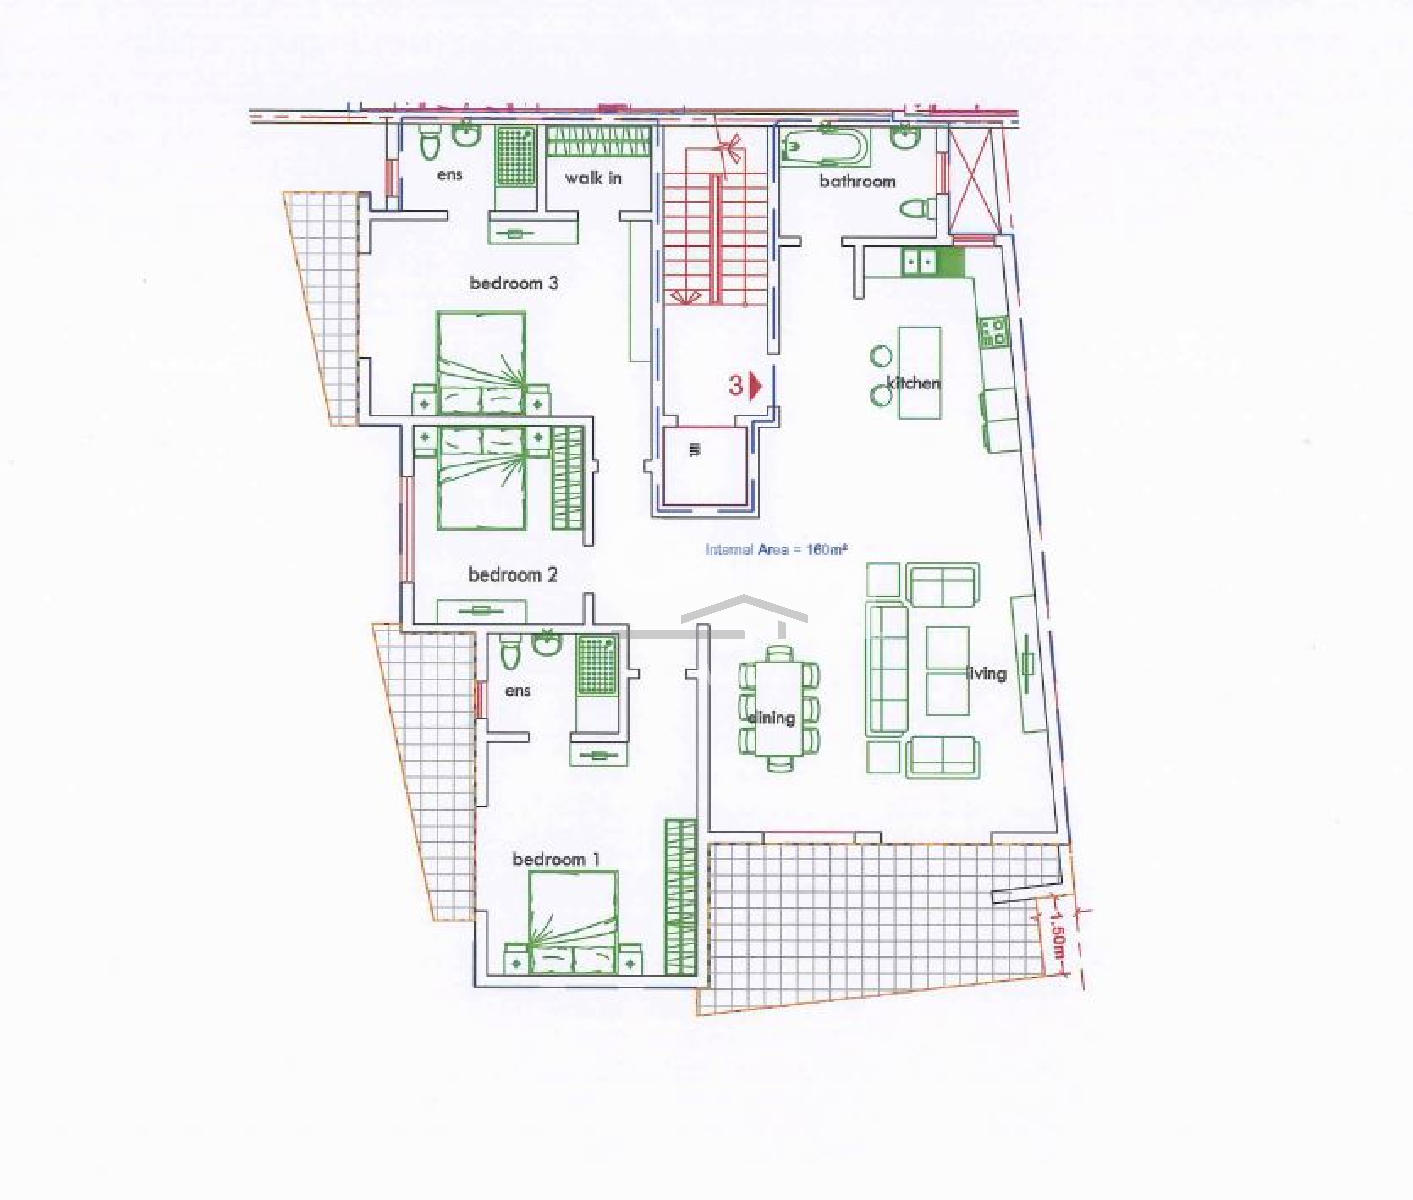 013CF10321–Finished Apartment